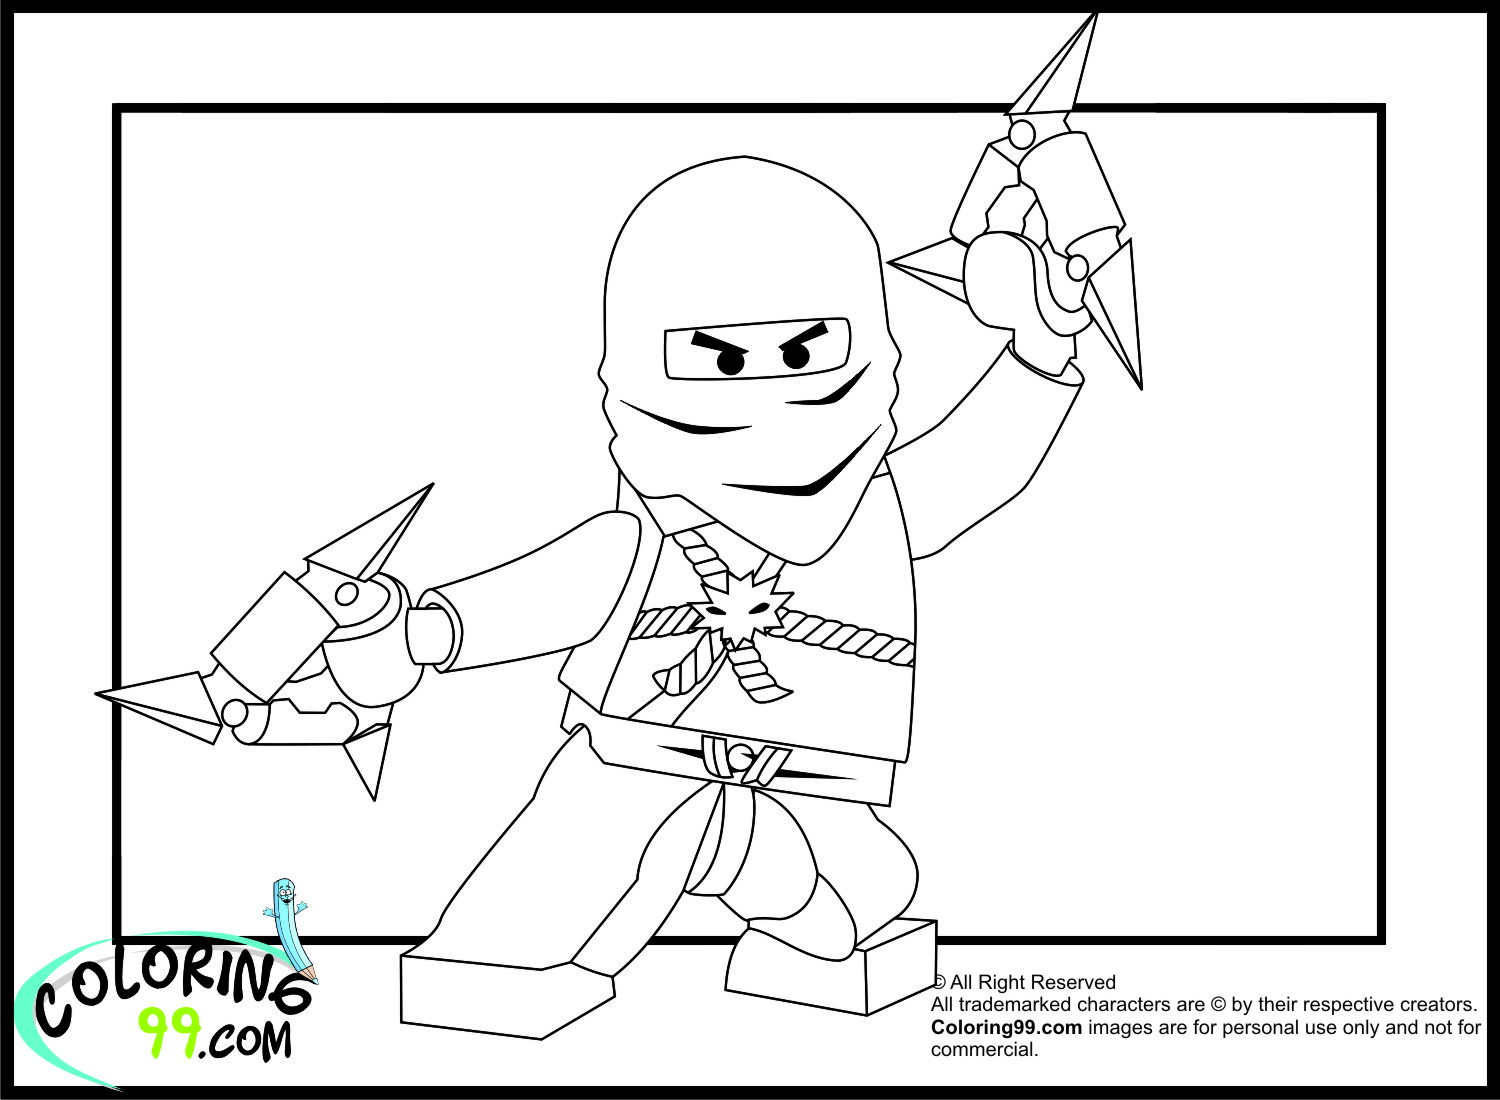 March 2013 team colors for Ninja lego coloring pages